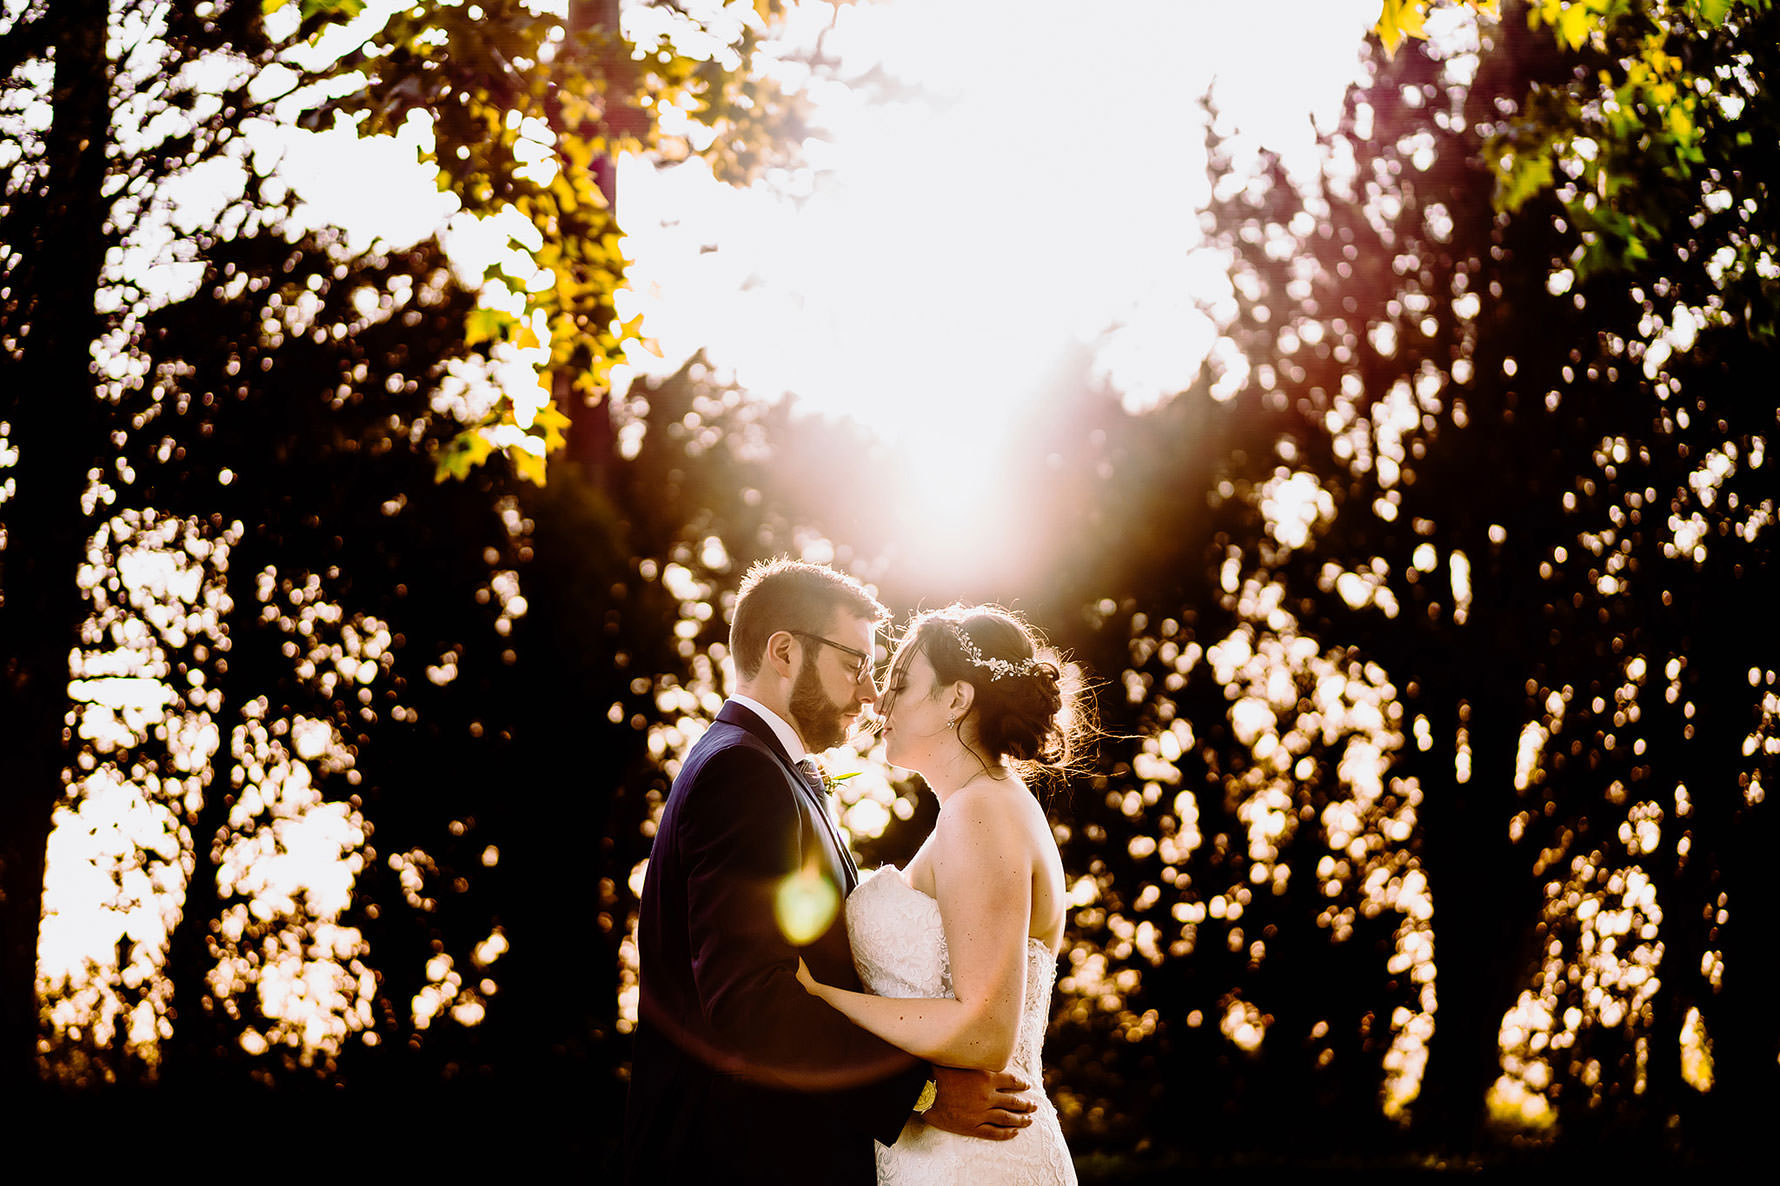 a creative photograph with lens flare